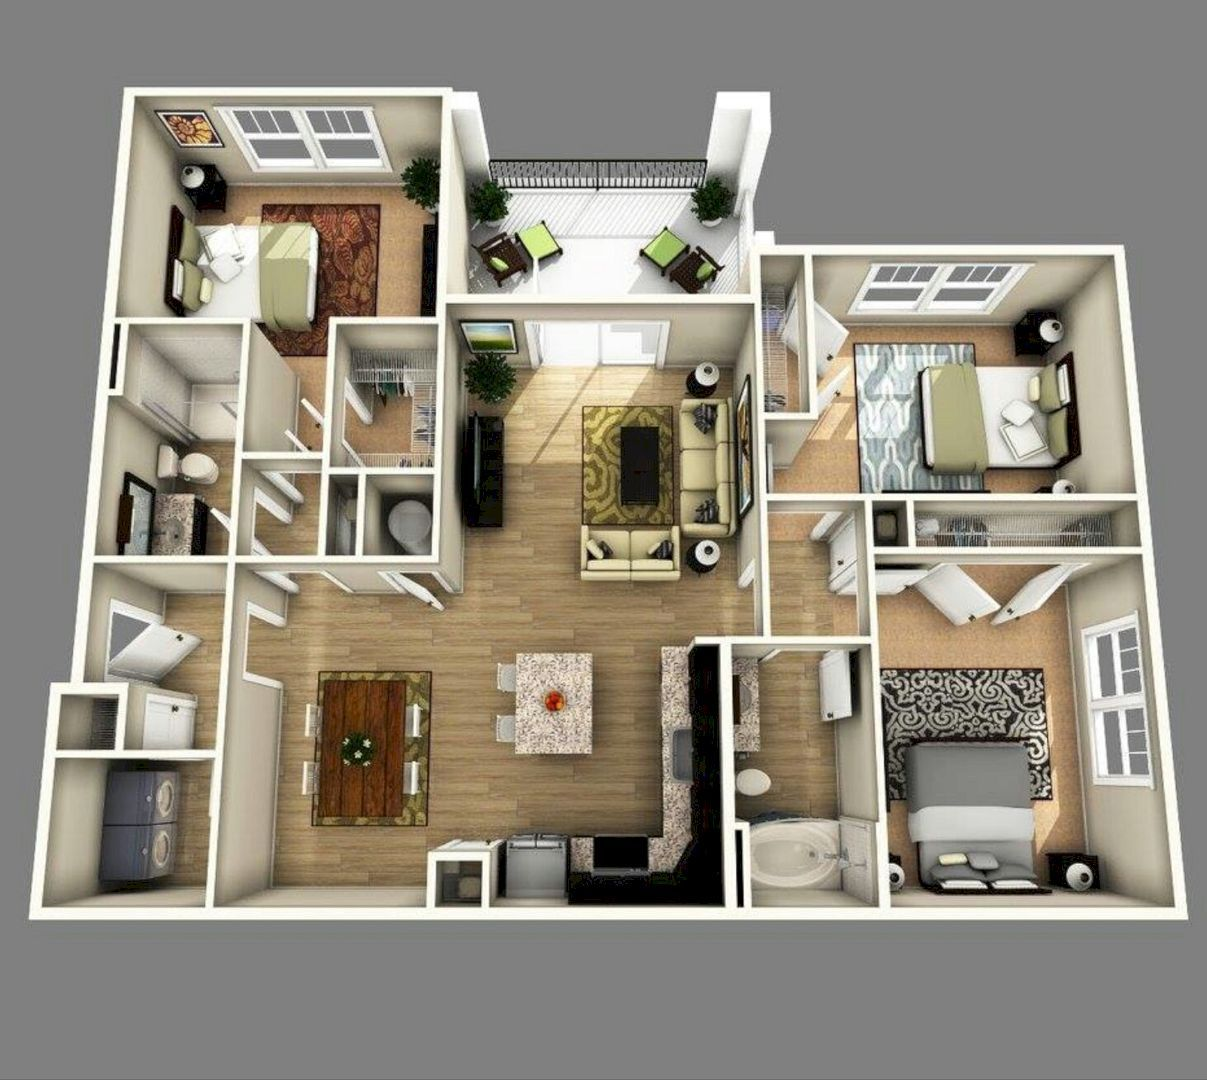 Well designed 3d house plan design ideas idee deco id e for Idee deco 3d